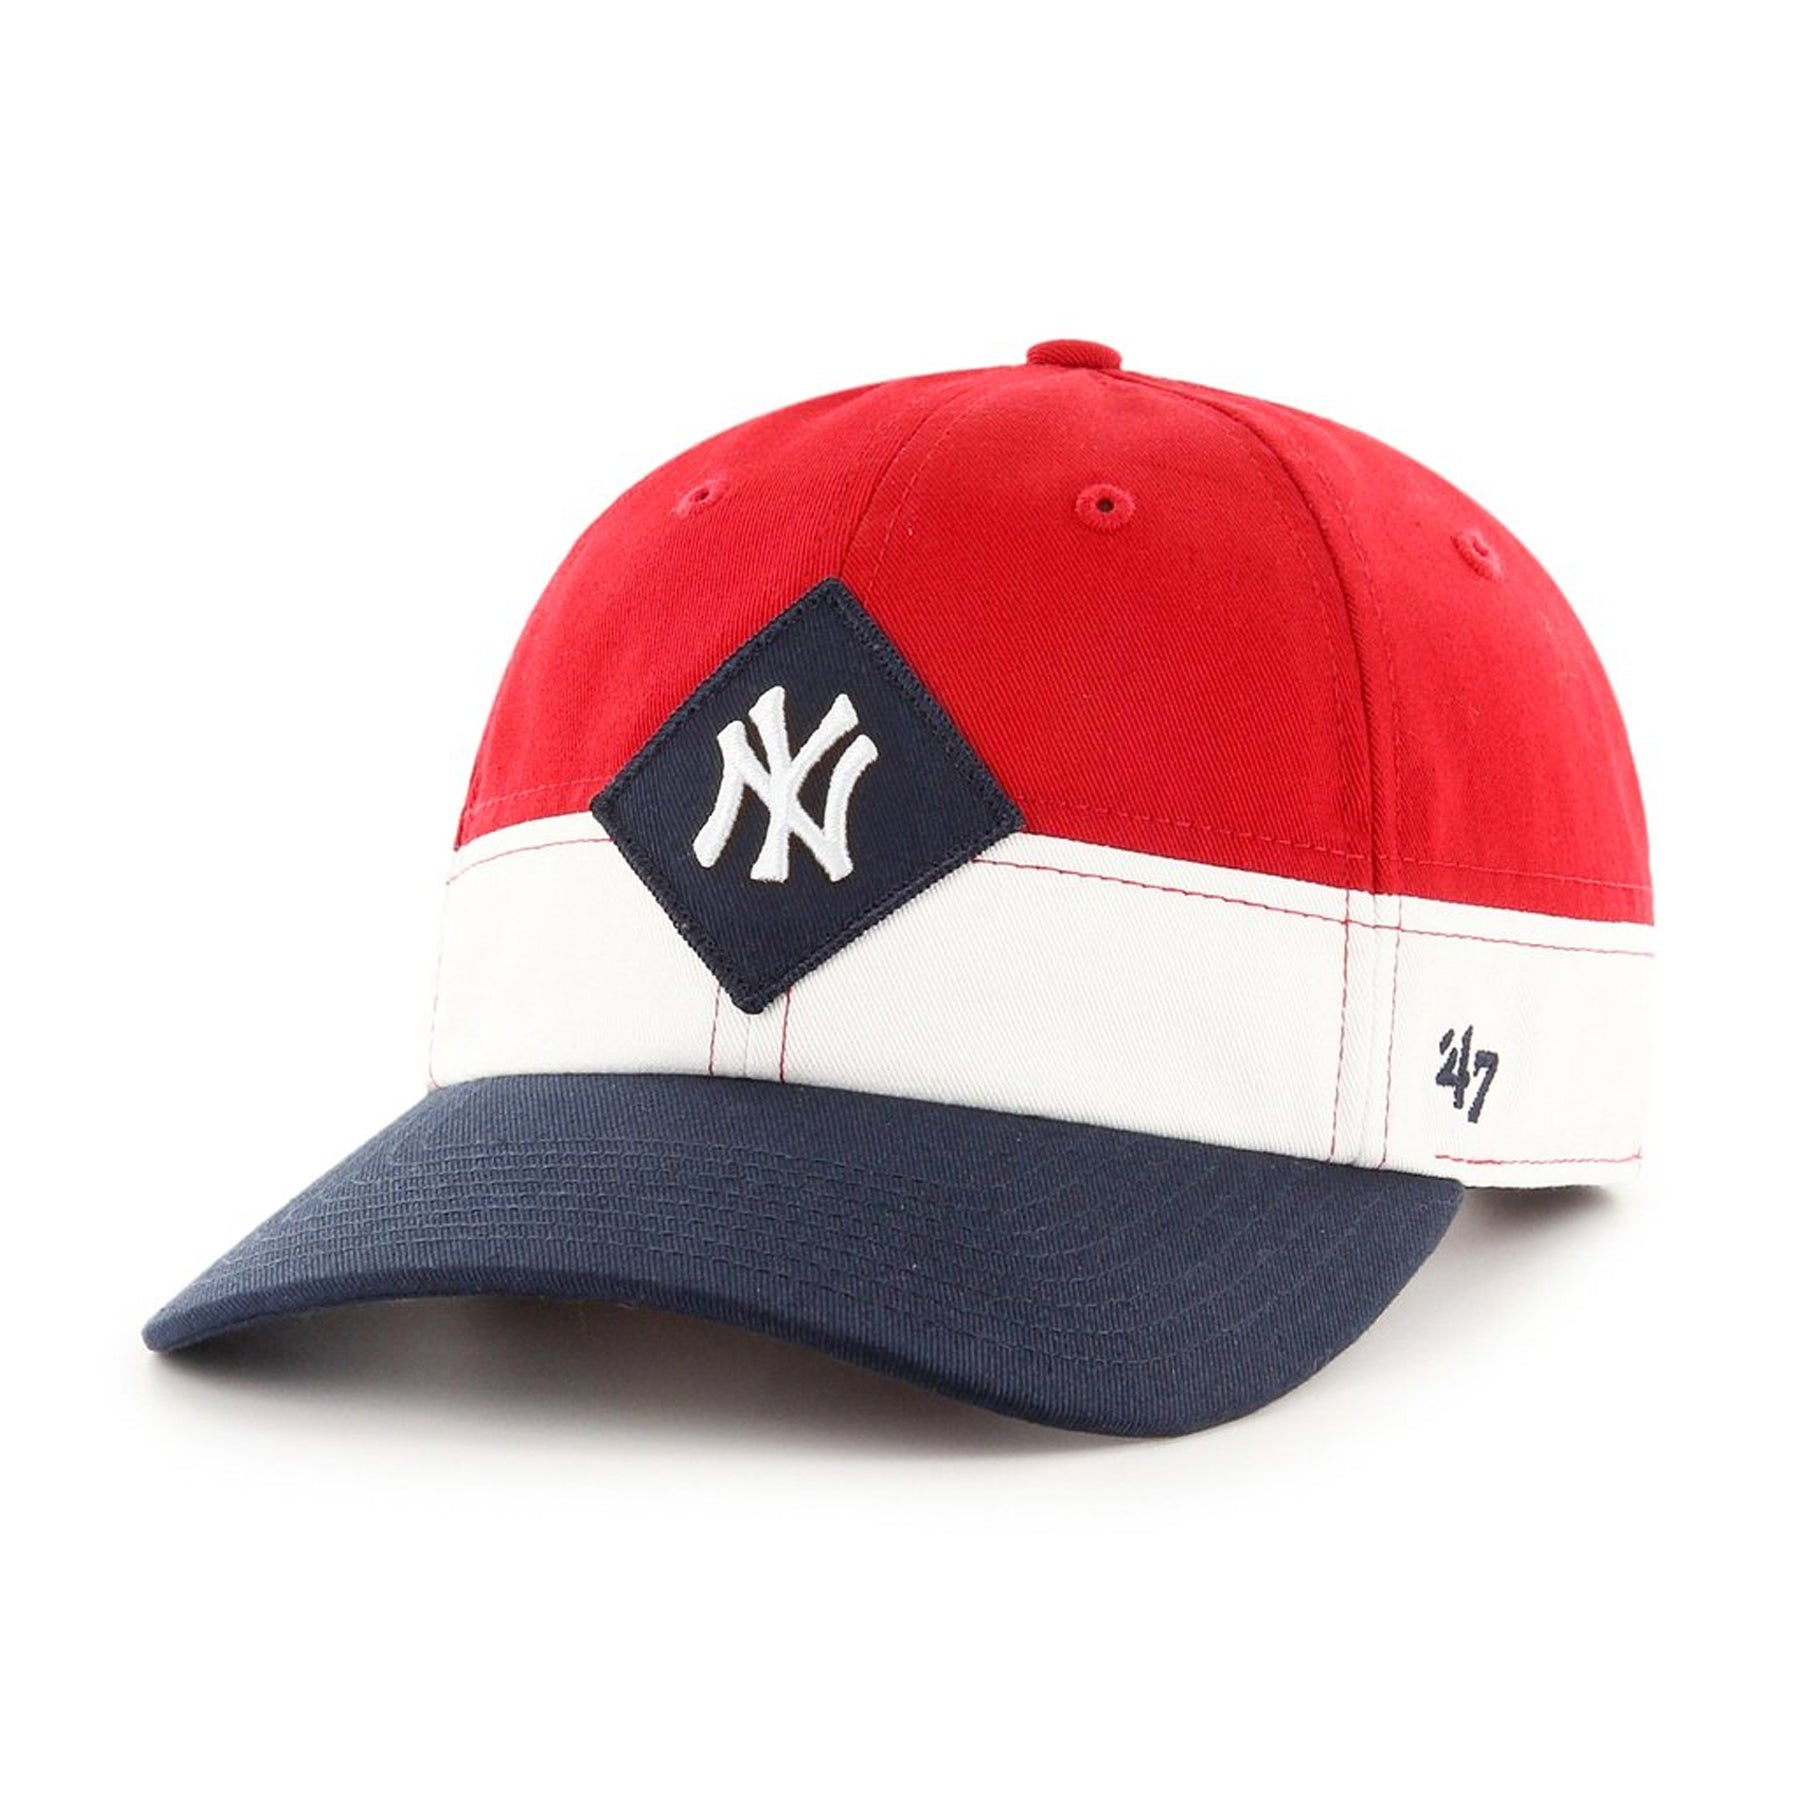 02b97f70124 on the front of the new york yankees three color dad hat is a navy blue